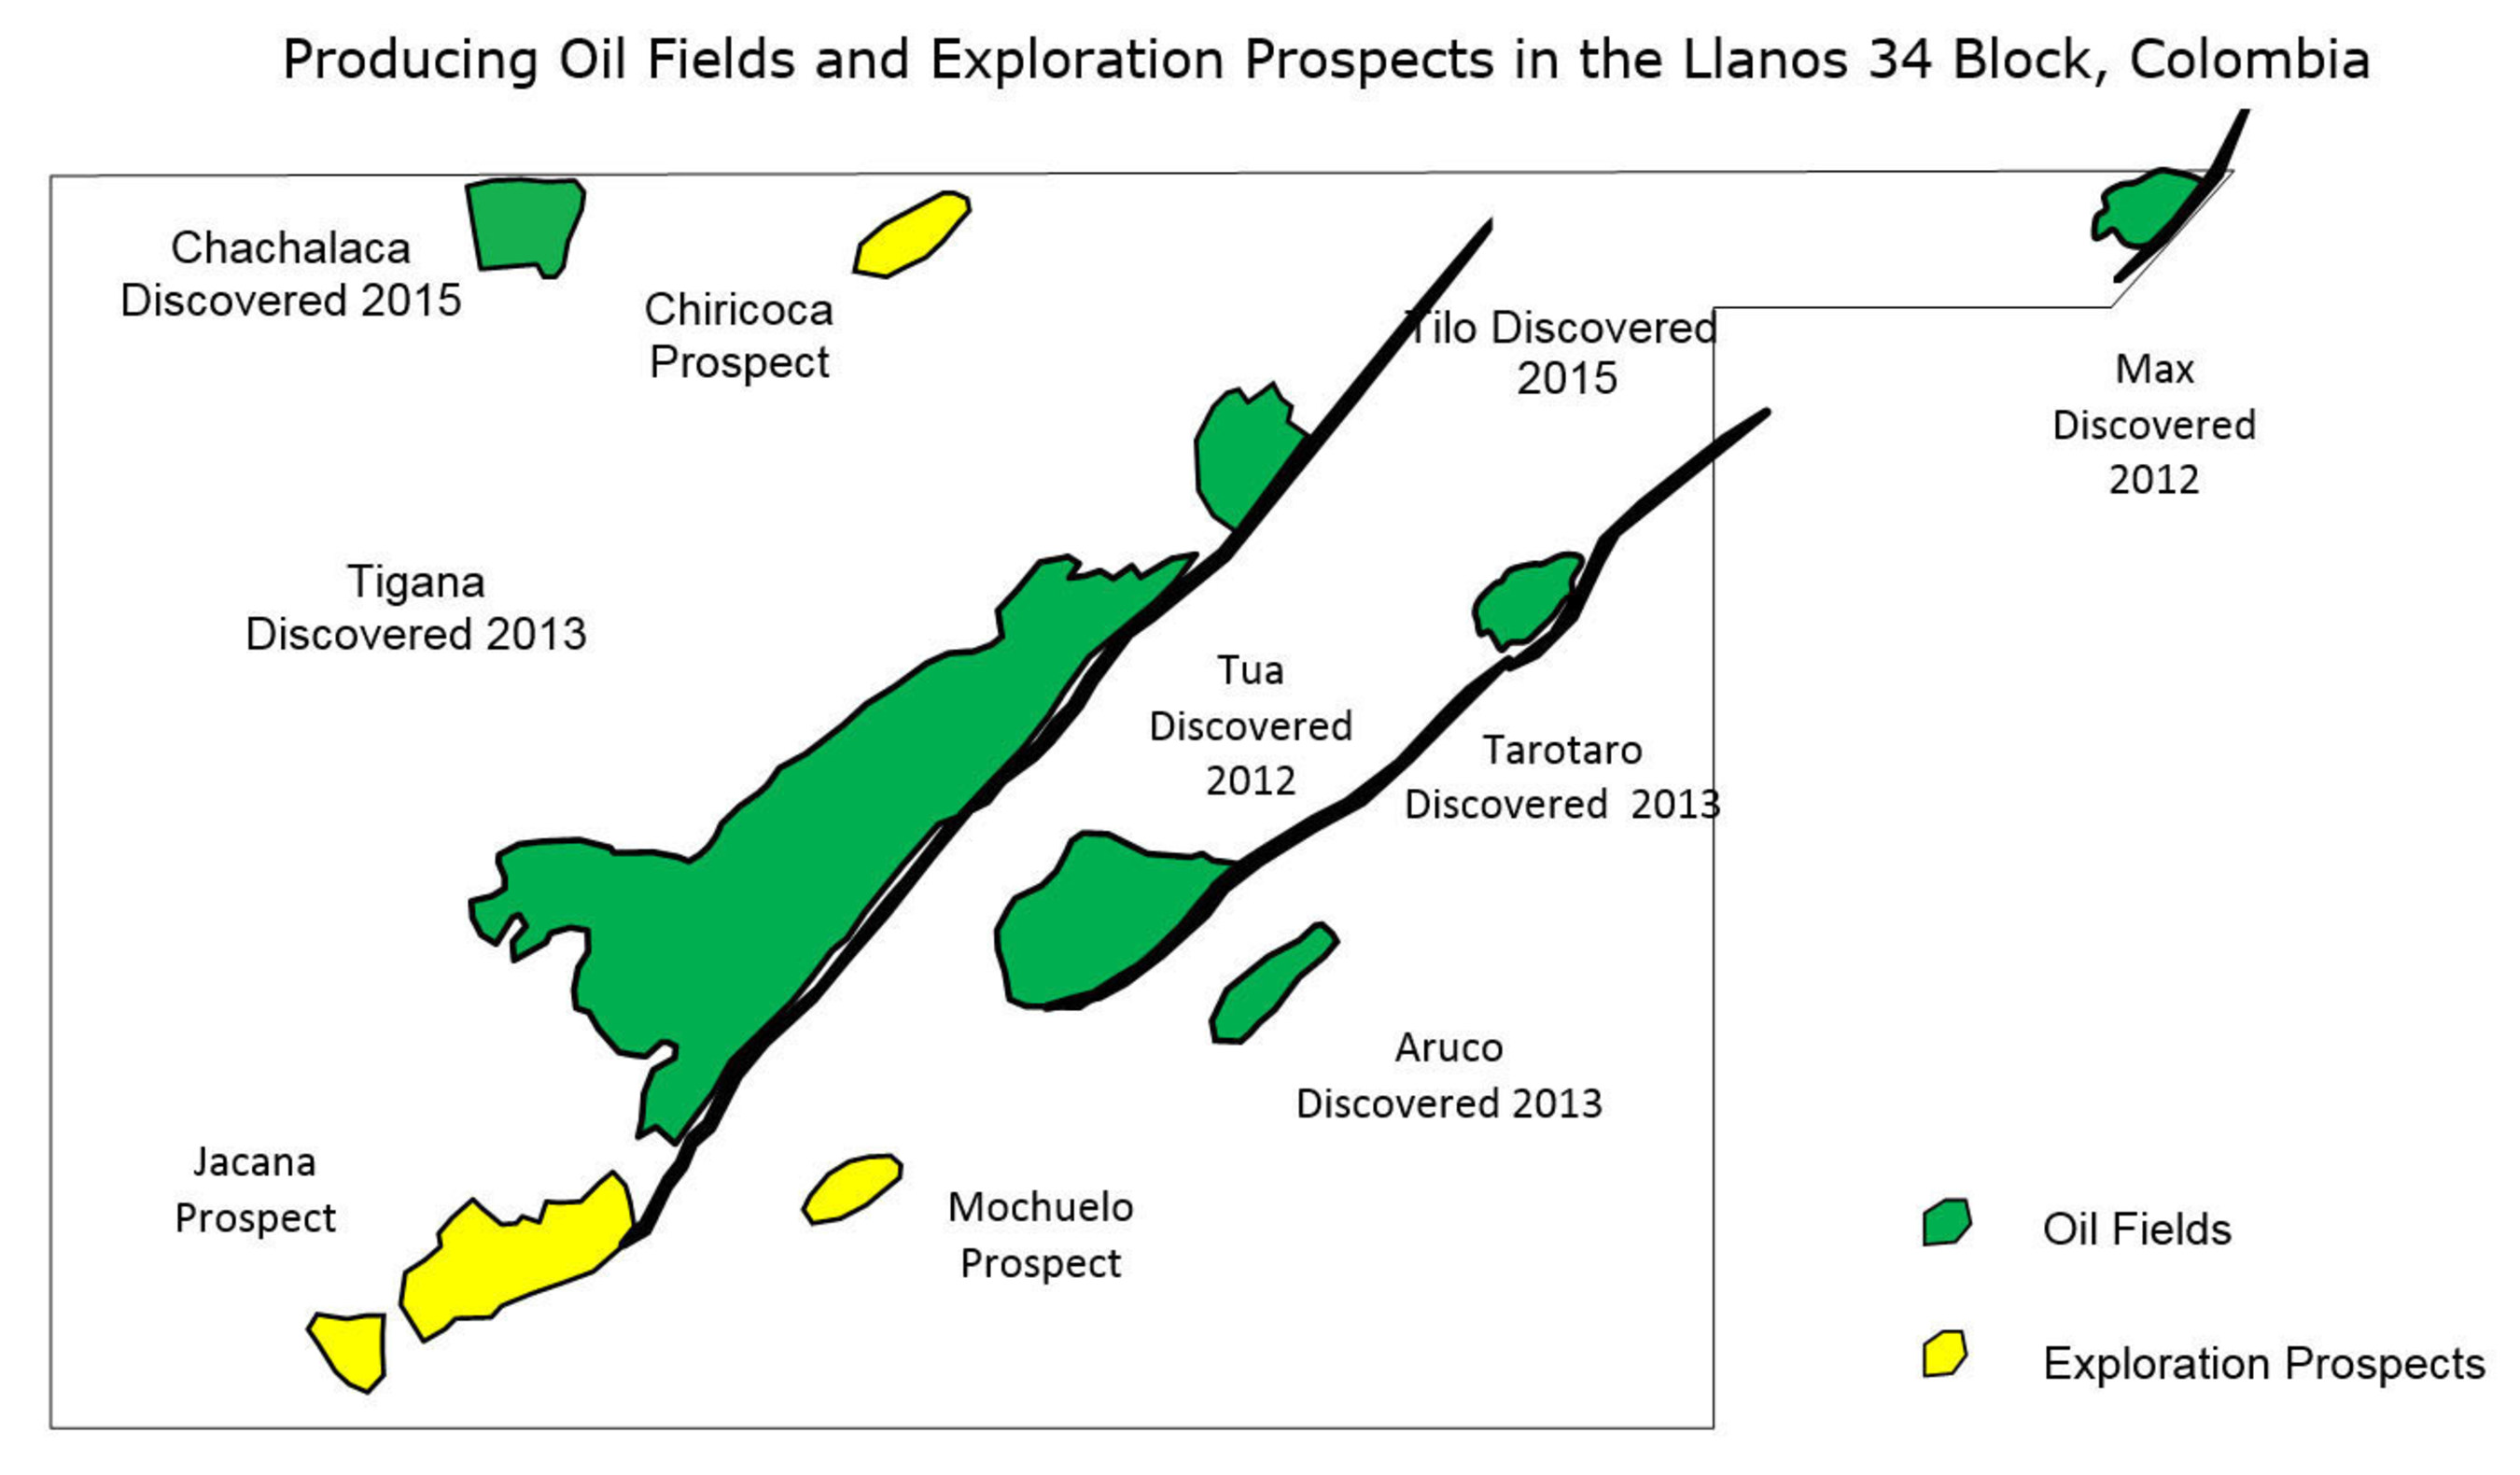 Producing Oil Fields and Exploration Prospects in the Llanos 34 Block, Colombia